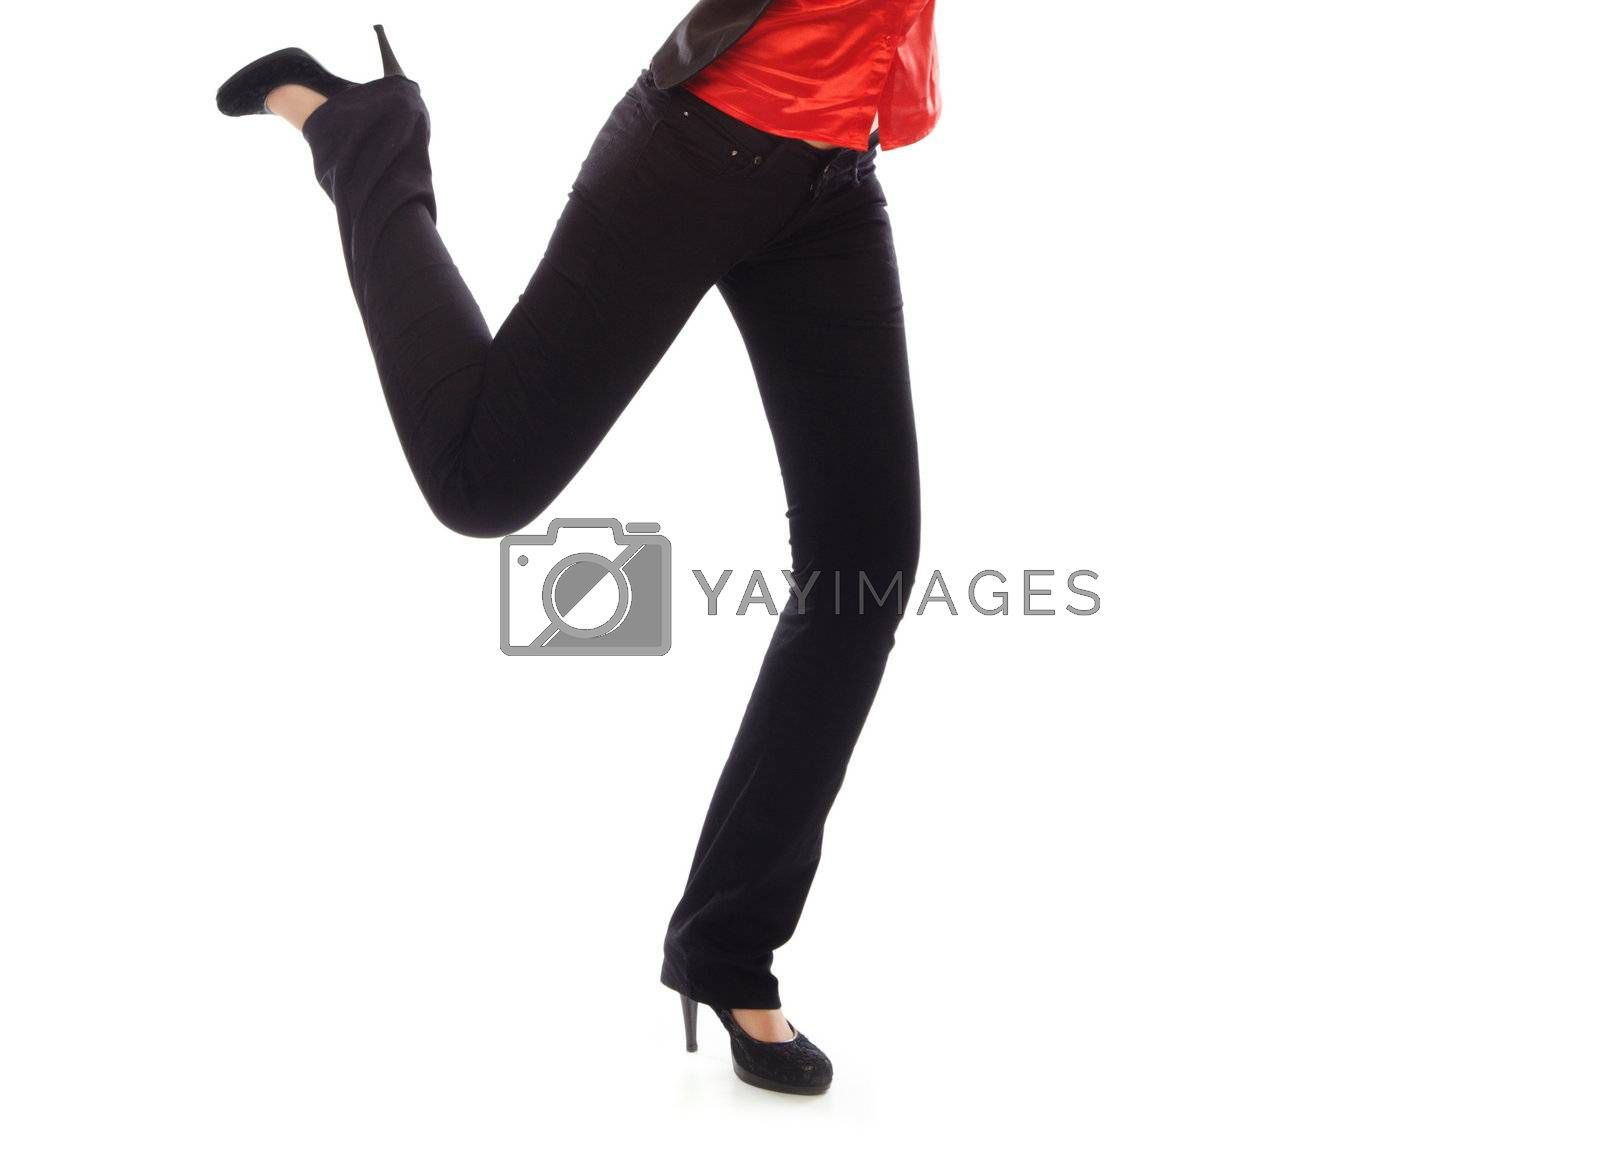 Legs of running human on a white background. Black trousers and red shirt